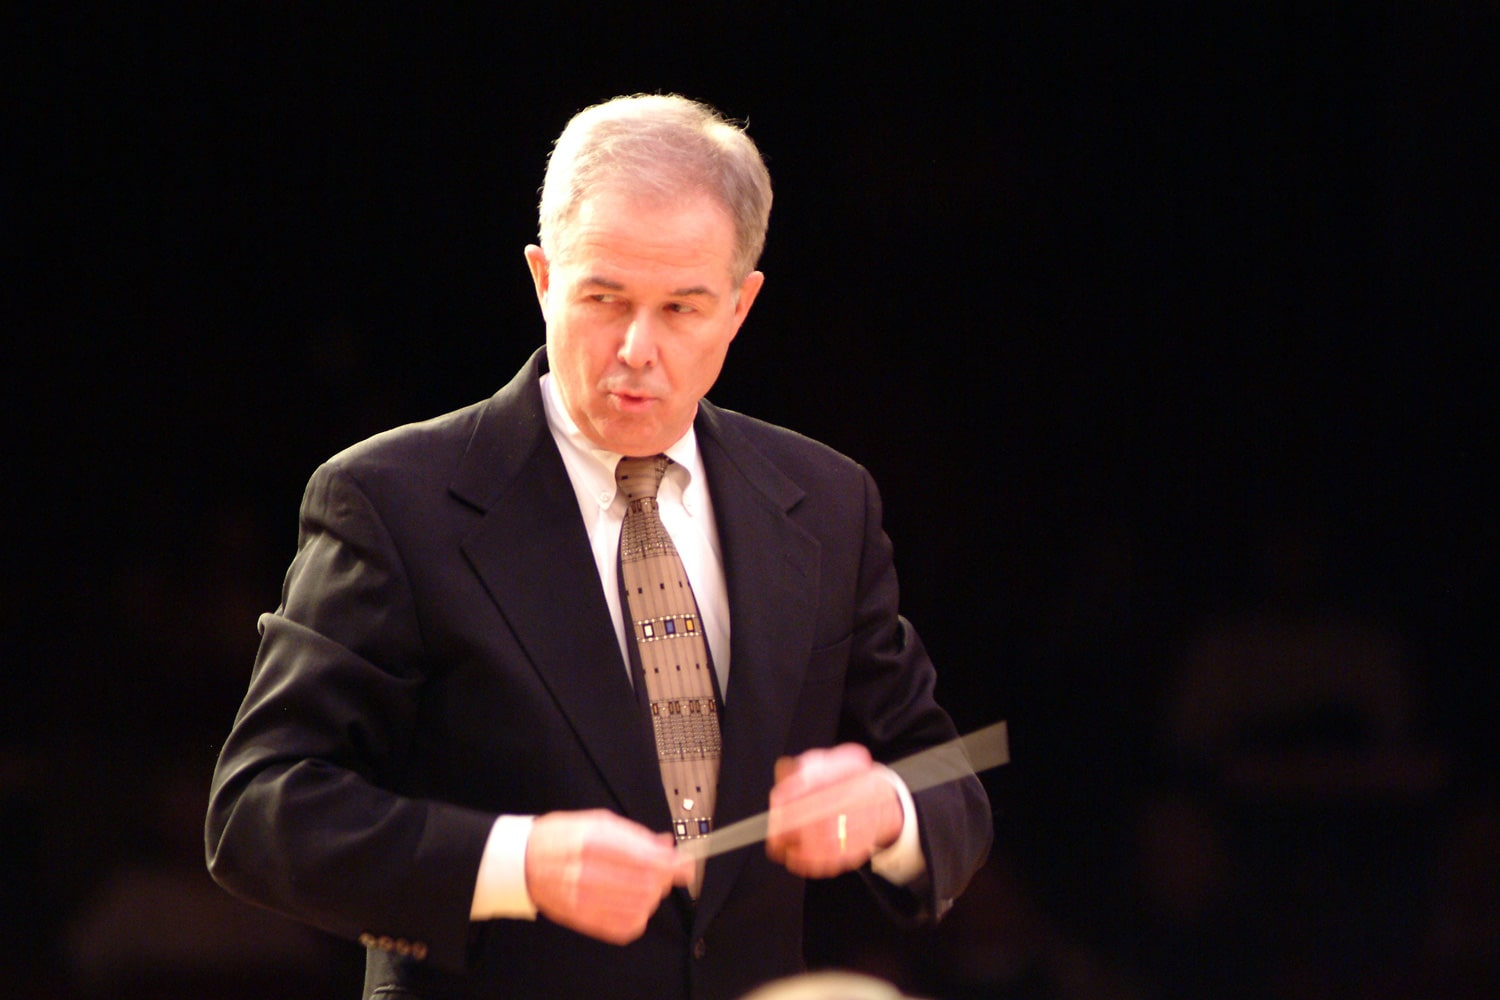 Death of a widely referenced conductor, 86